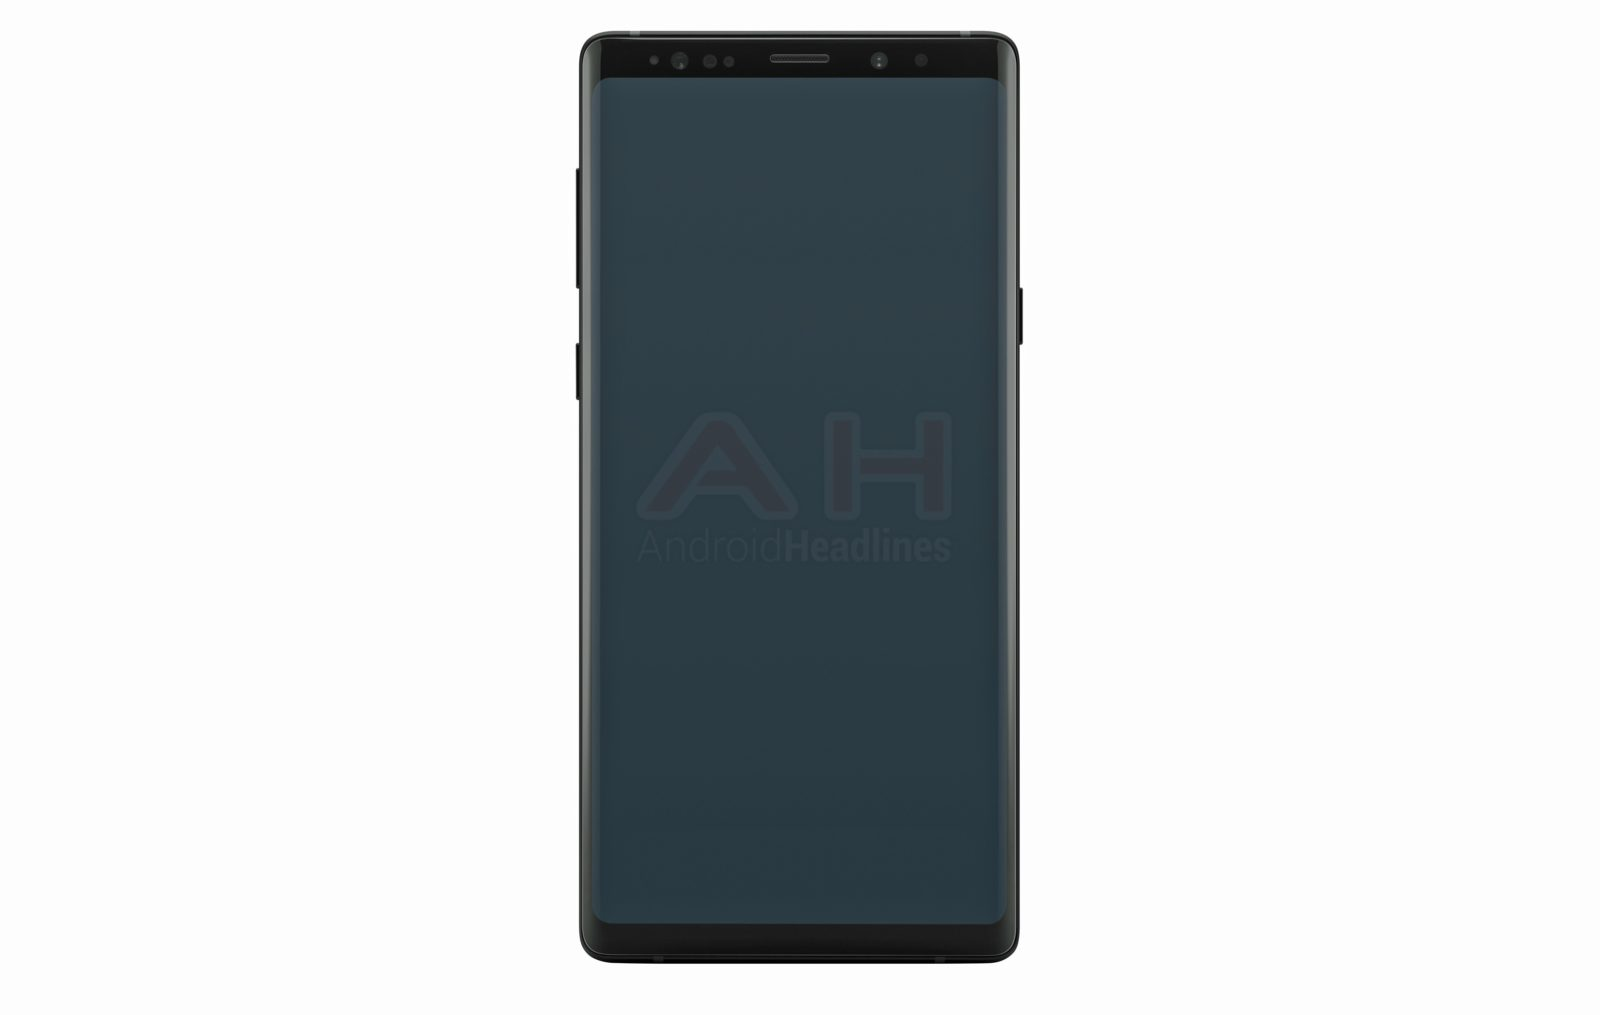 Samsung Galaxy Note 9 Image Leak Reveals Close Design Ties To Note 8 Predecessor